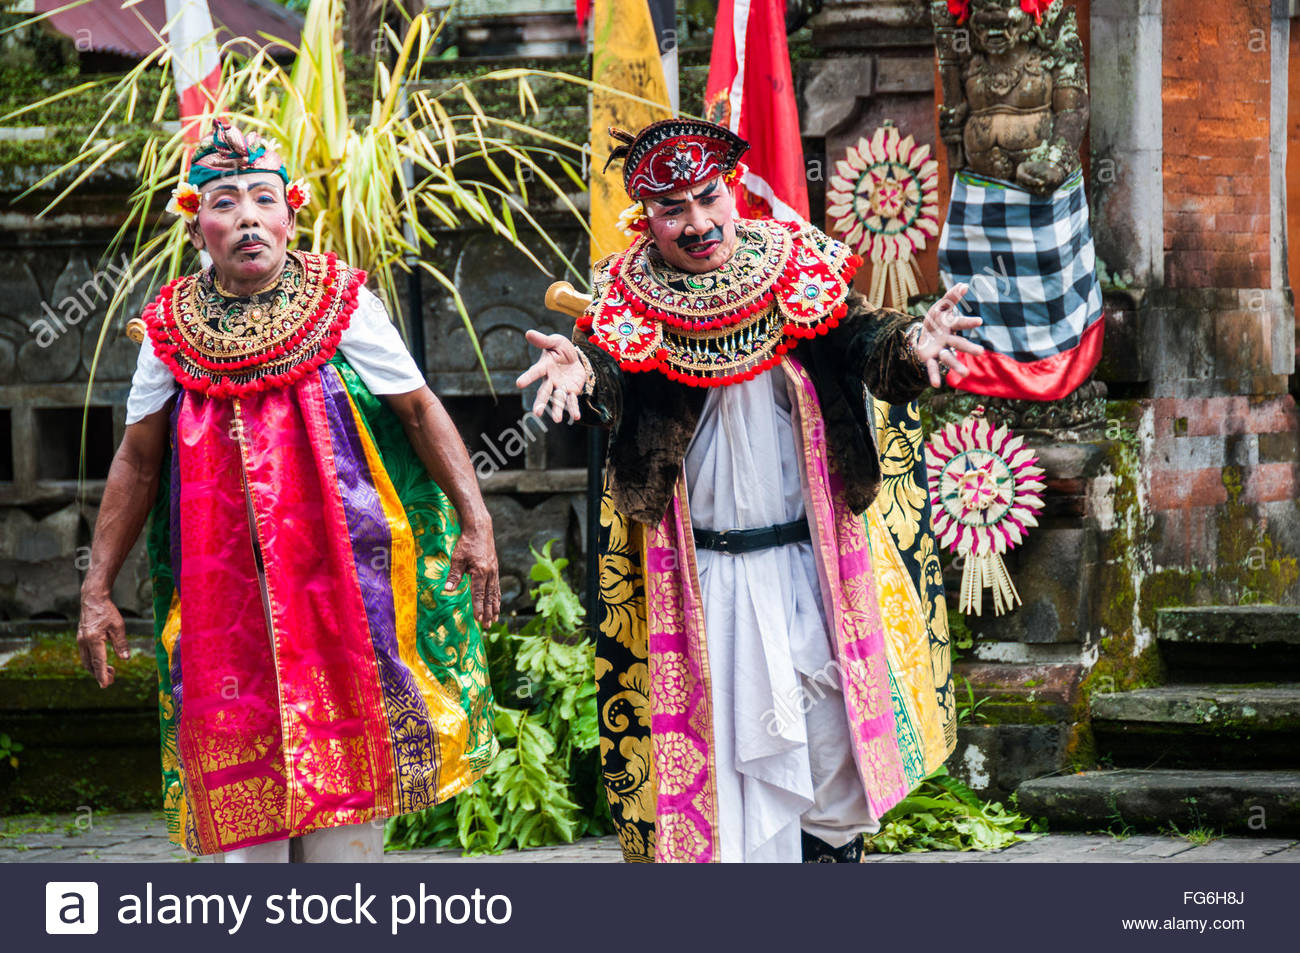 Dewi Kunti servants on stage at the Batubulan Barong dance performance, Bali, Indonesia - Stock Image